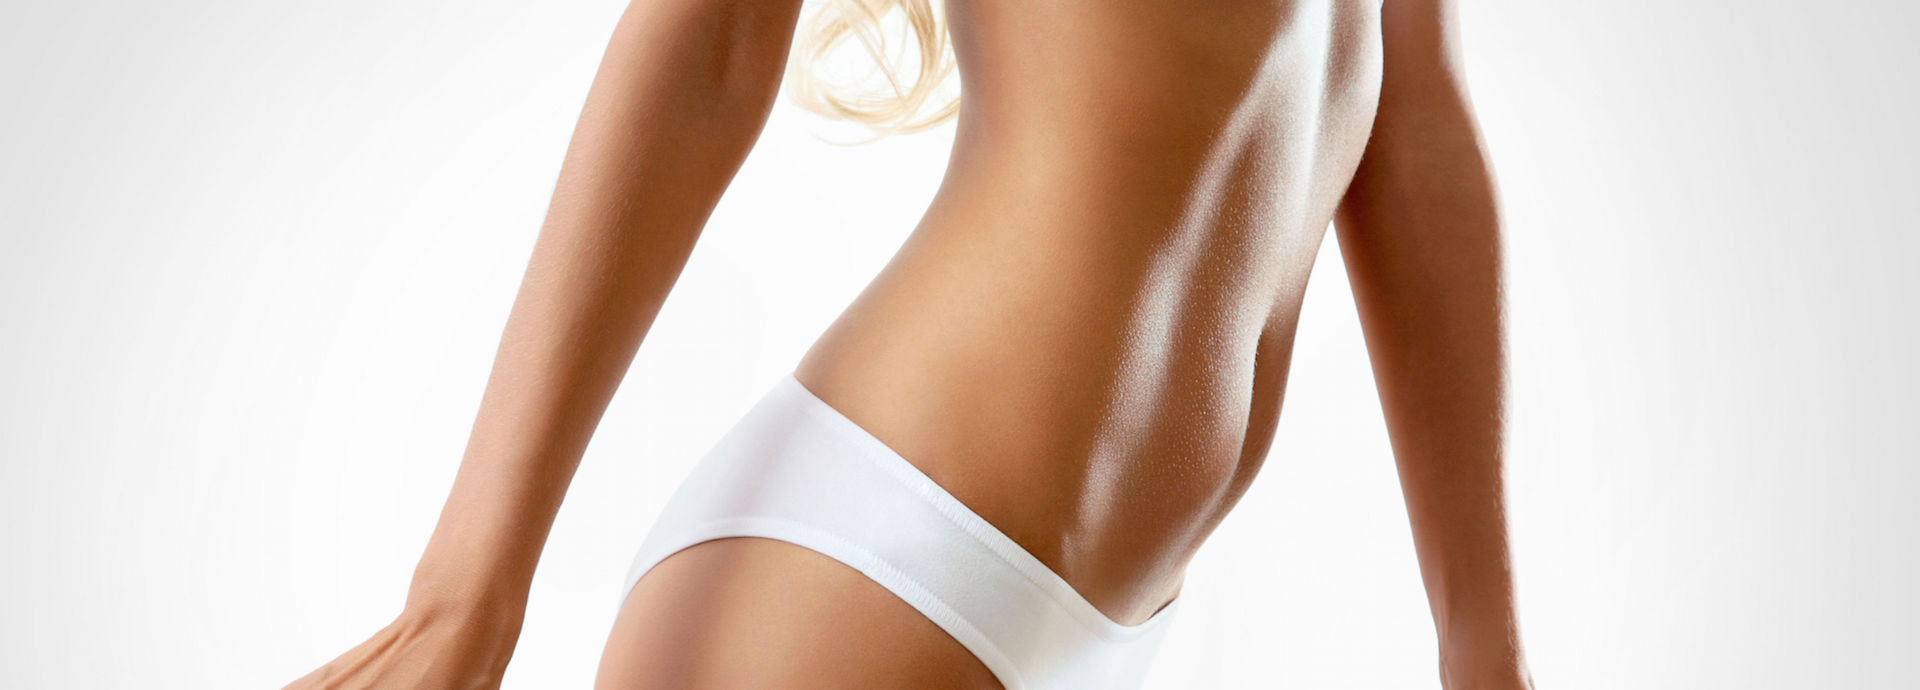 Laser Liposuction Miami Florida Dr Sean Simon Plastic Surgery